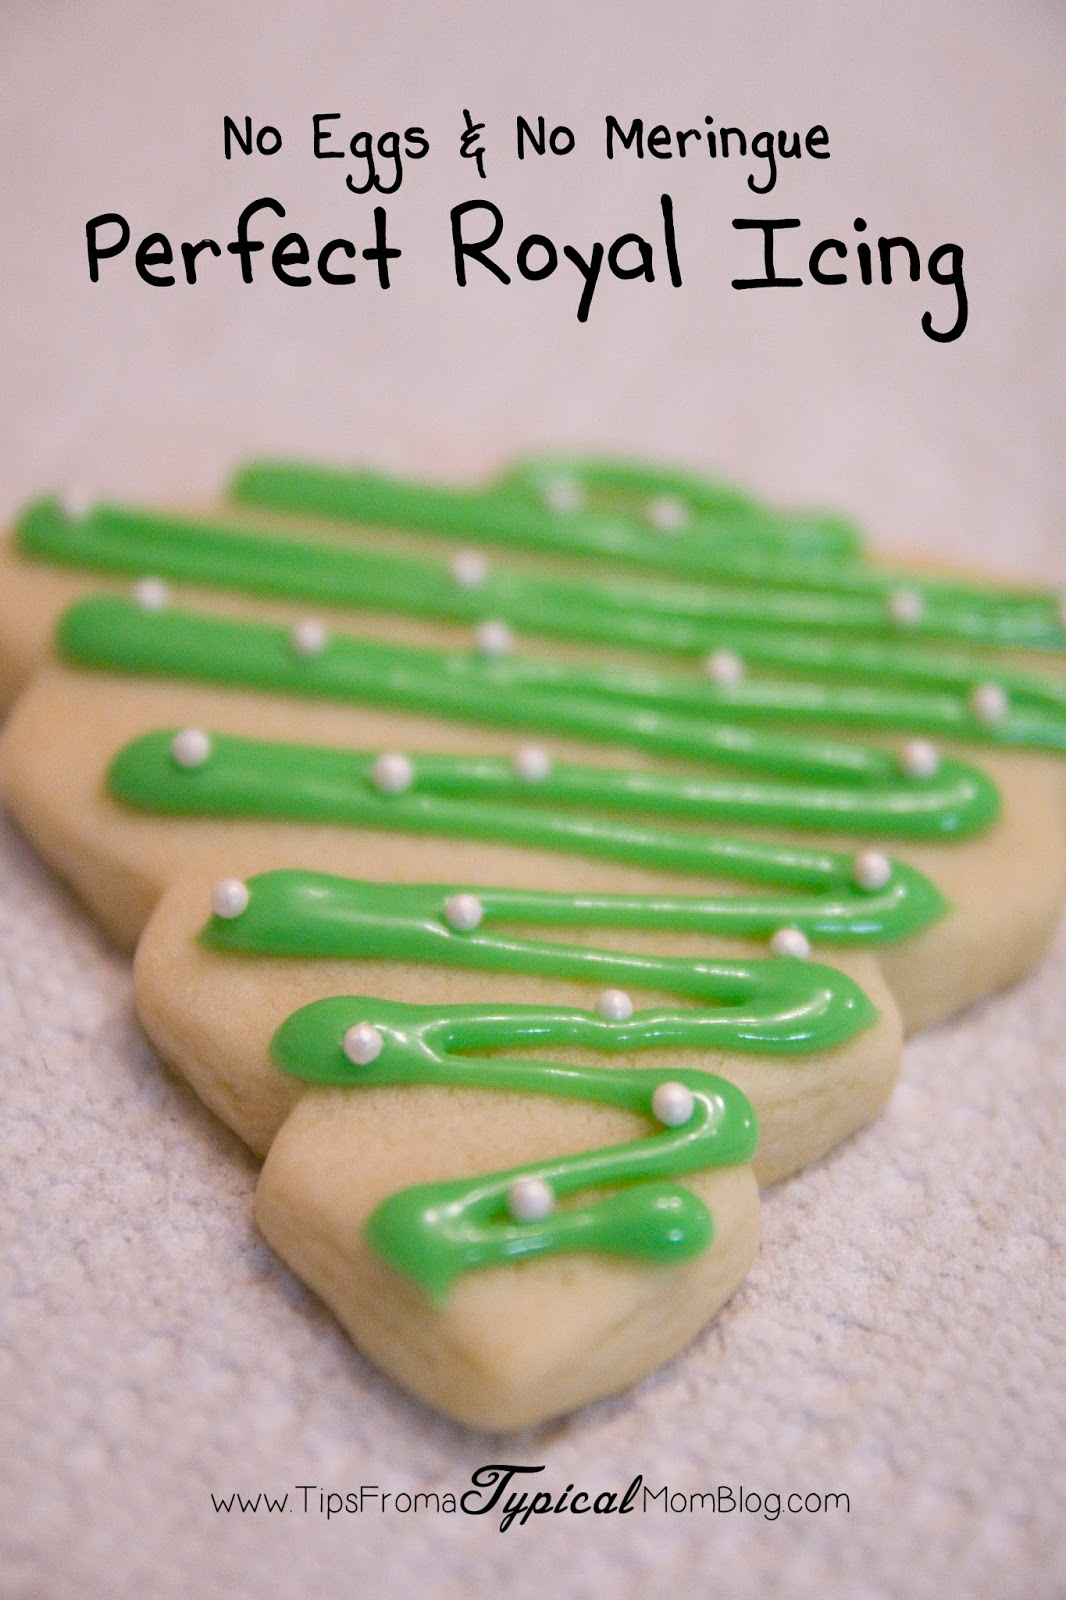 Meringue powder may be the gold standard for royal icing, but you can make a beautifully smooth alternative with egg whites instead. Royal Icing Without Egg Whites Or Meringue Powder Tips From A Typical Mom